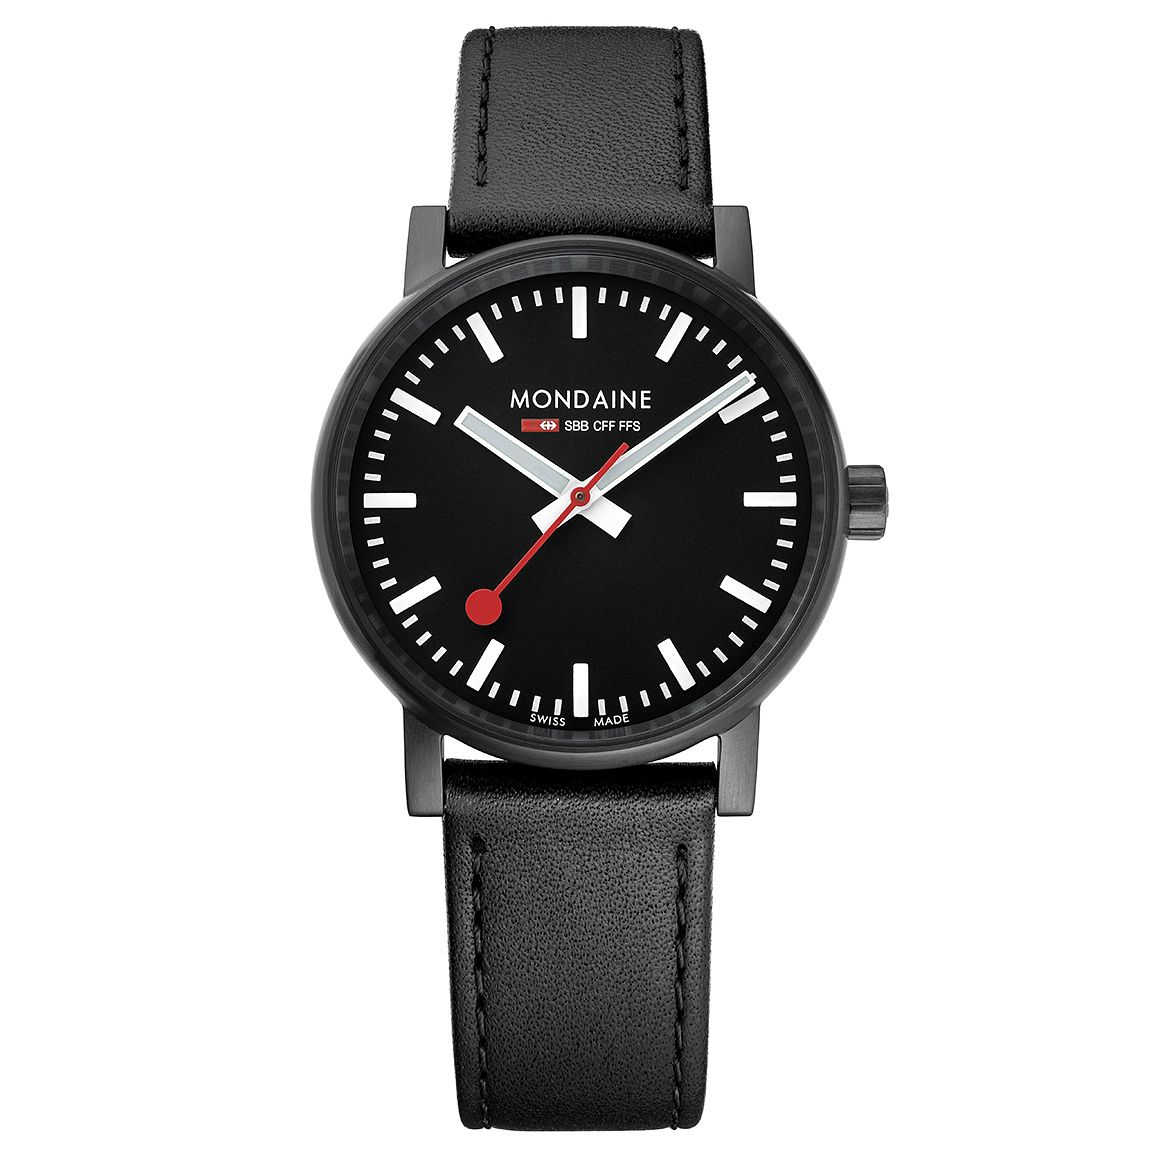 Mondaine SBB evo2 Men's Black Leather Strap Watch - Product number 8044023